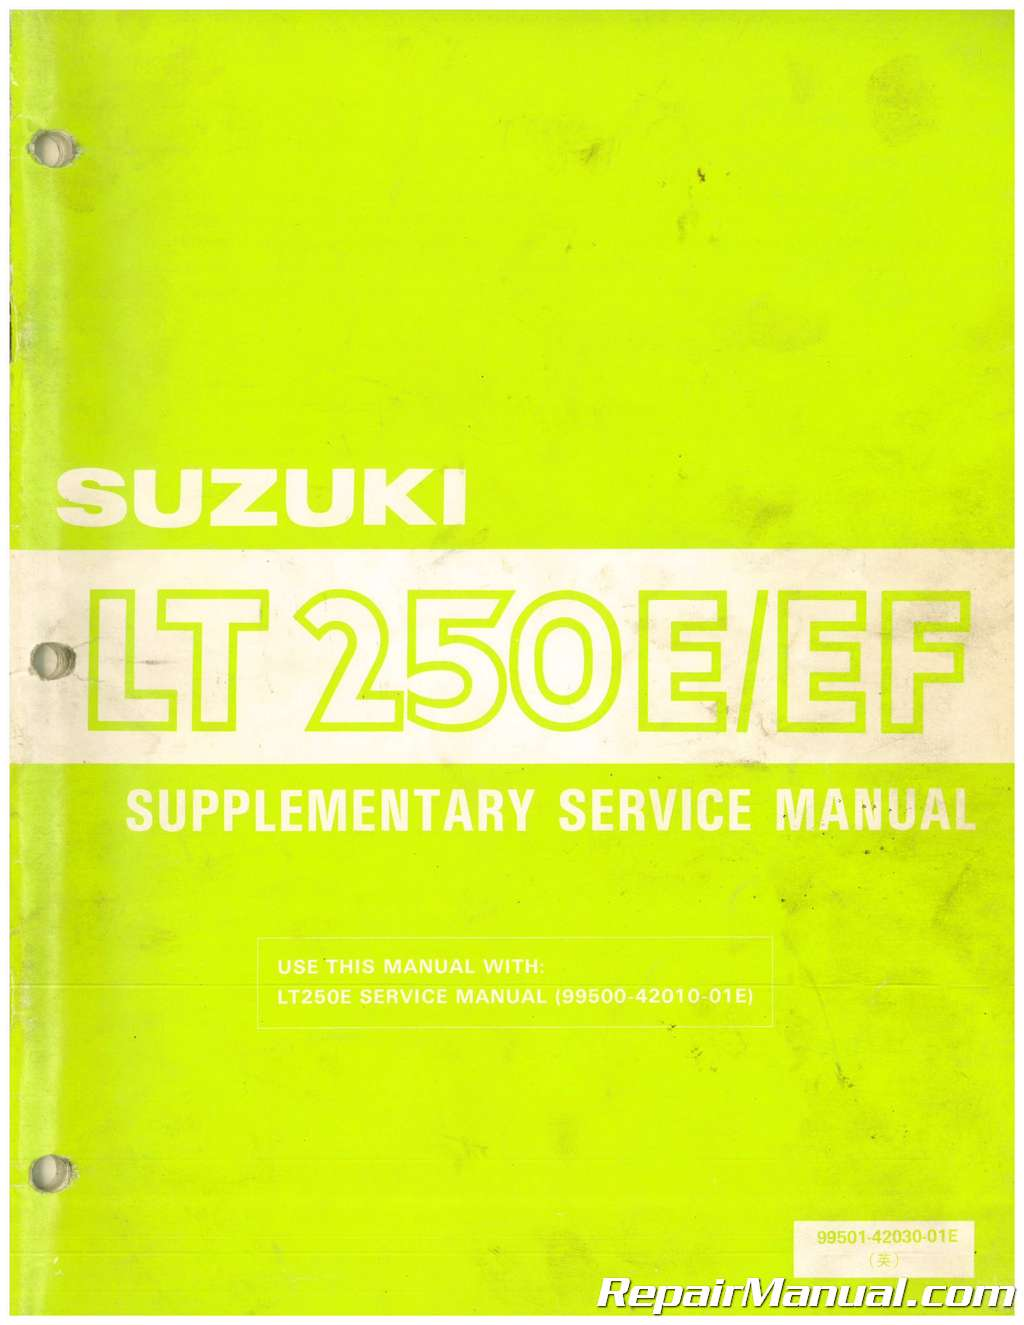 1986 Suzuki Lt250e Lt250ef Supplementary Service Manual